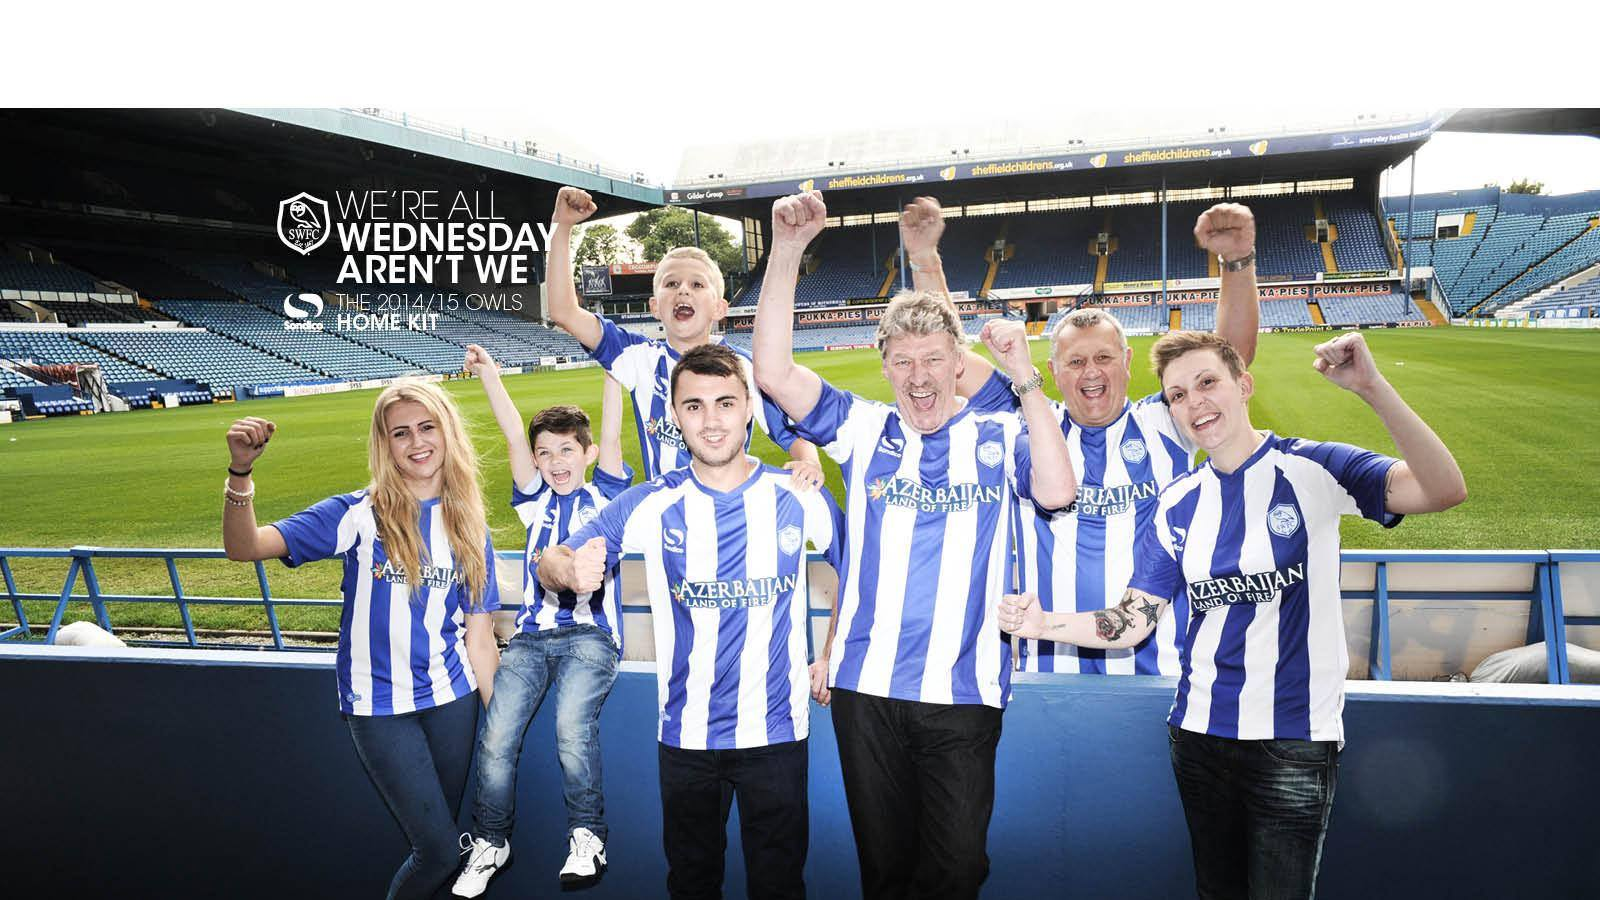 sheffield wednesday - photo #37